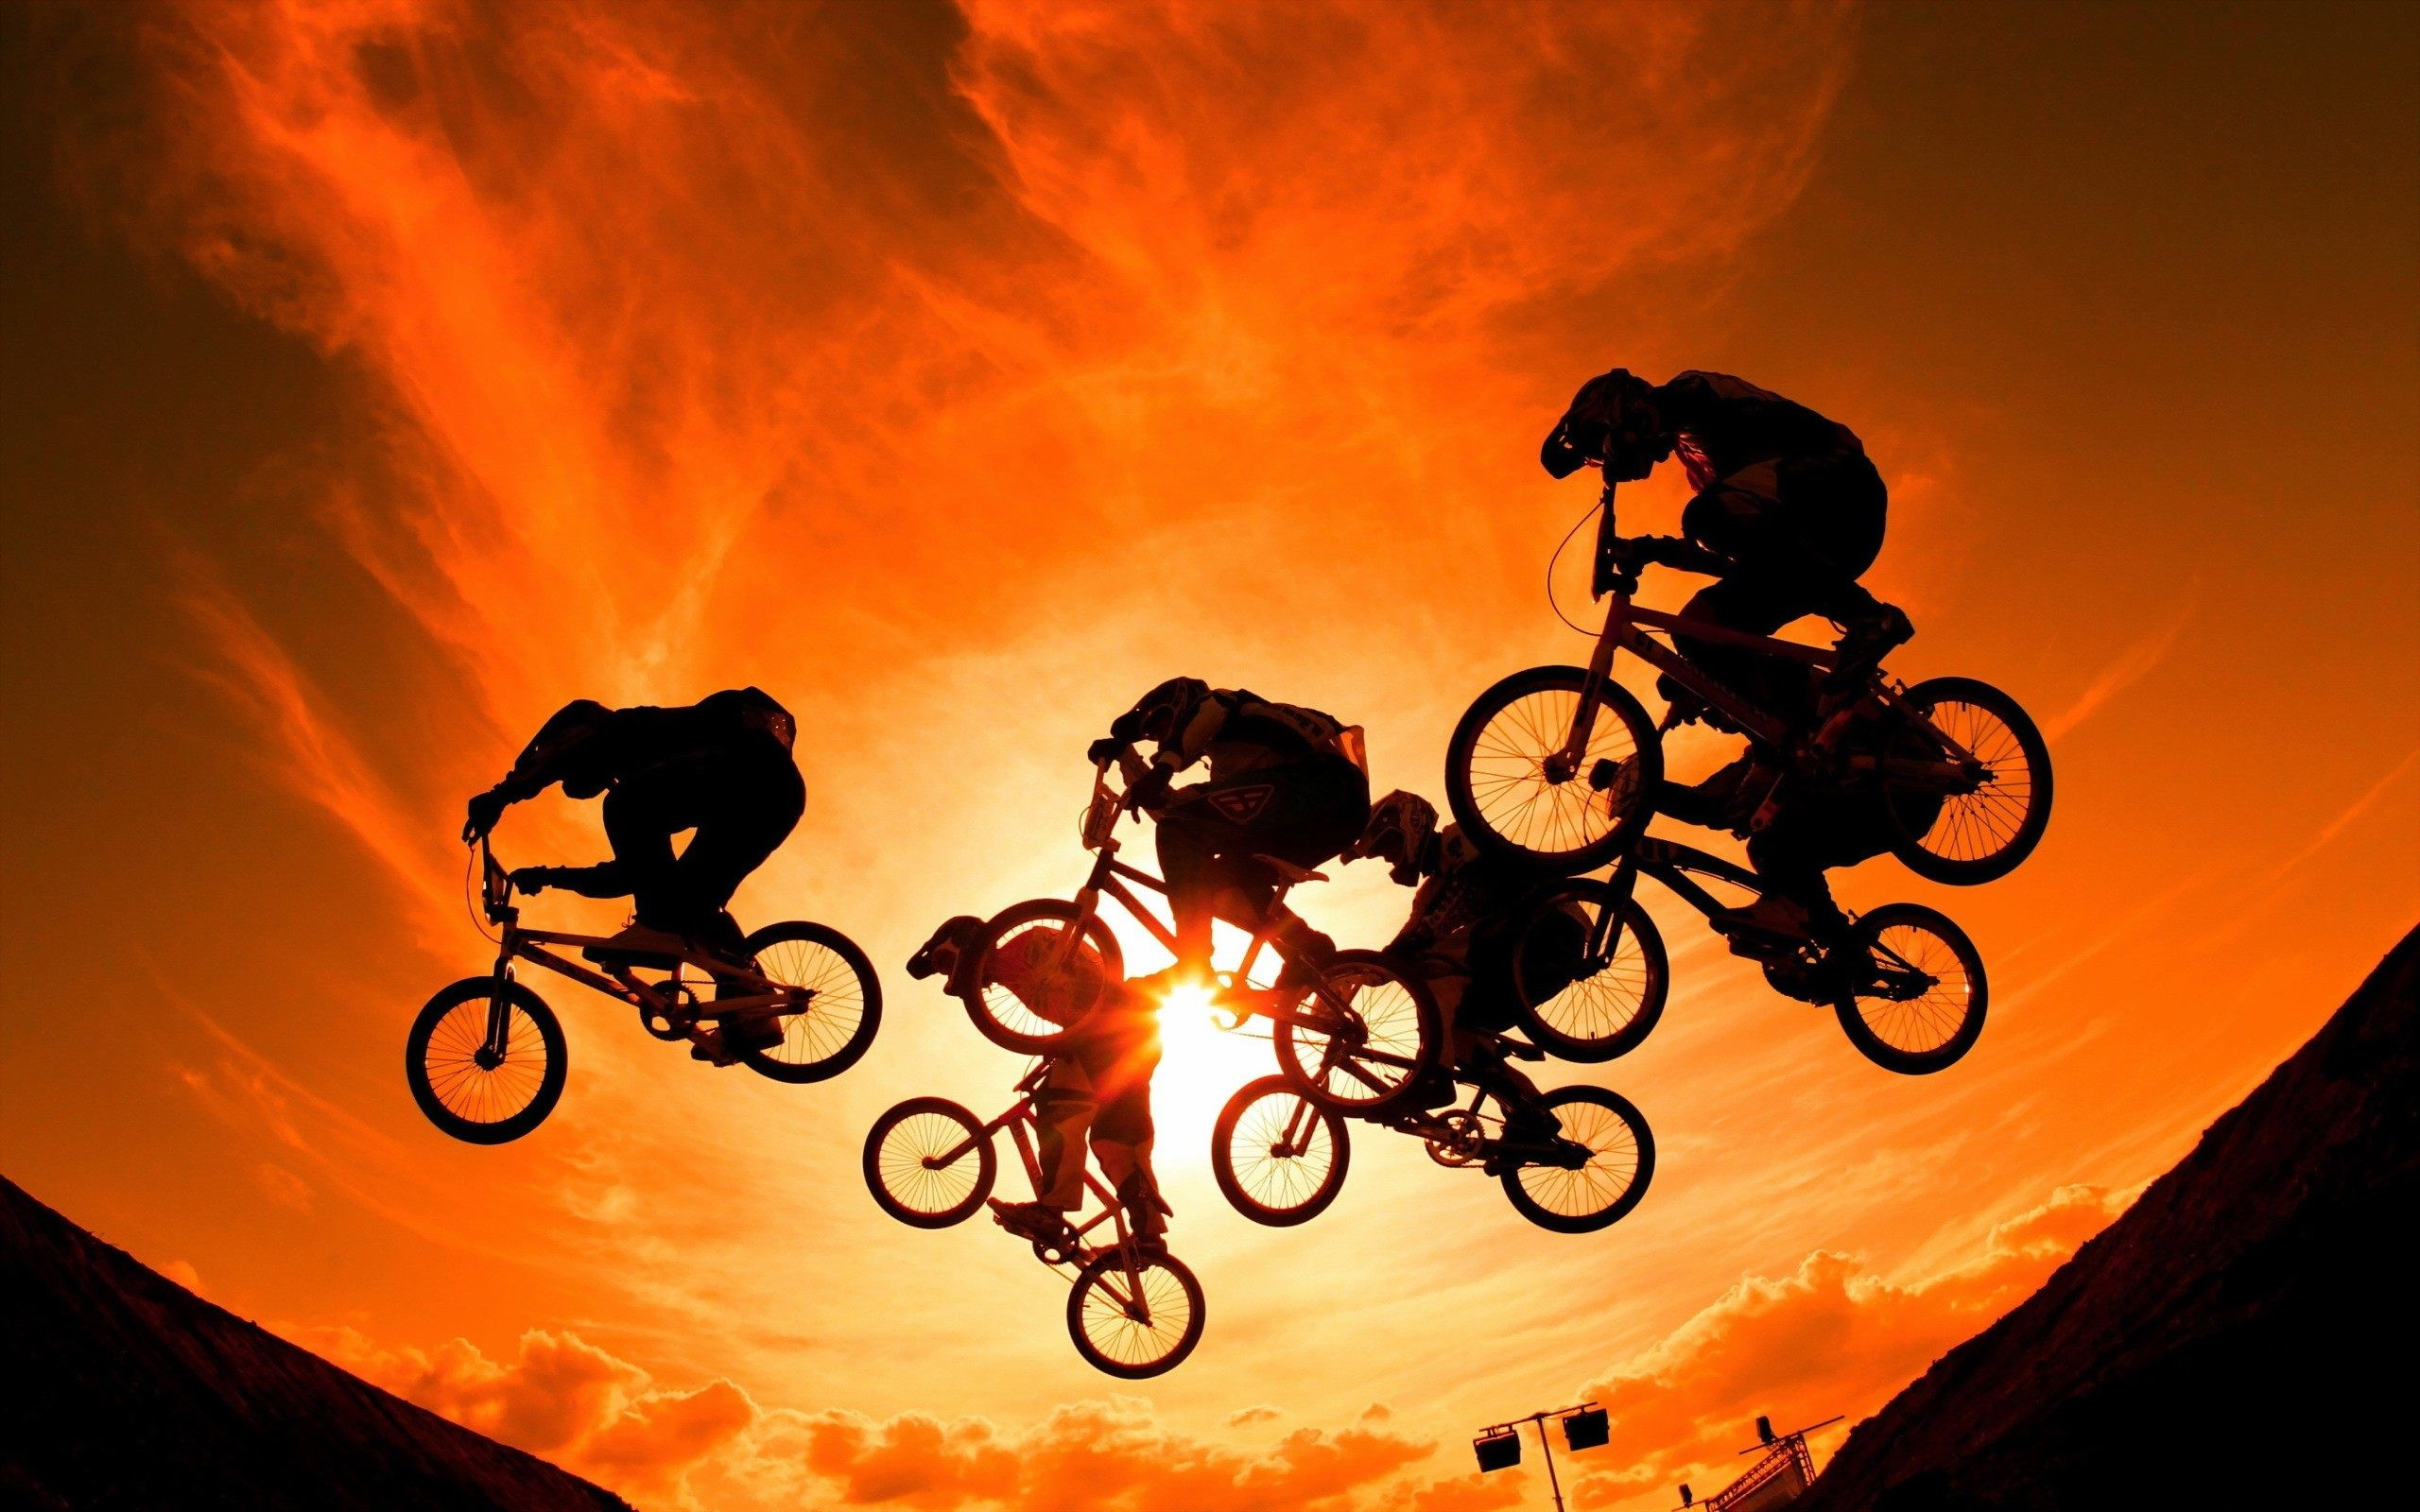 … cyclists sports wallpaper hd download of cycling sport …